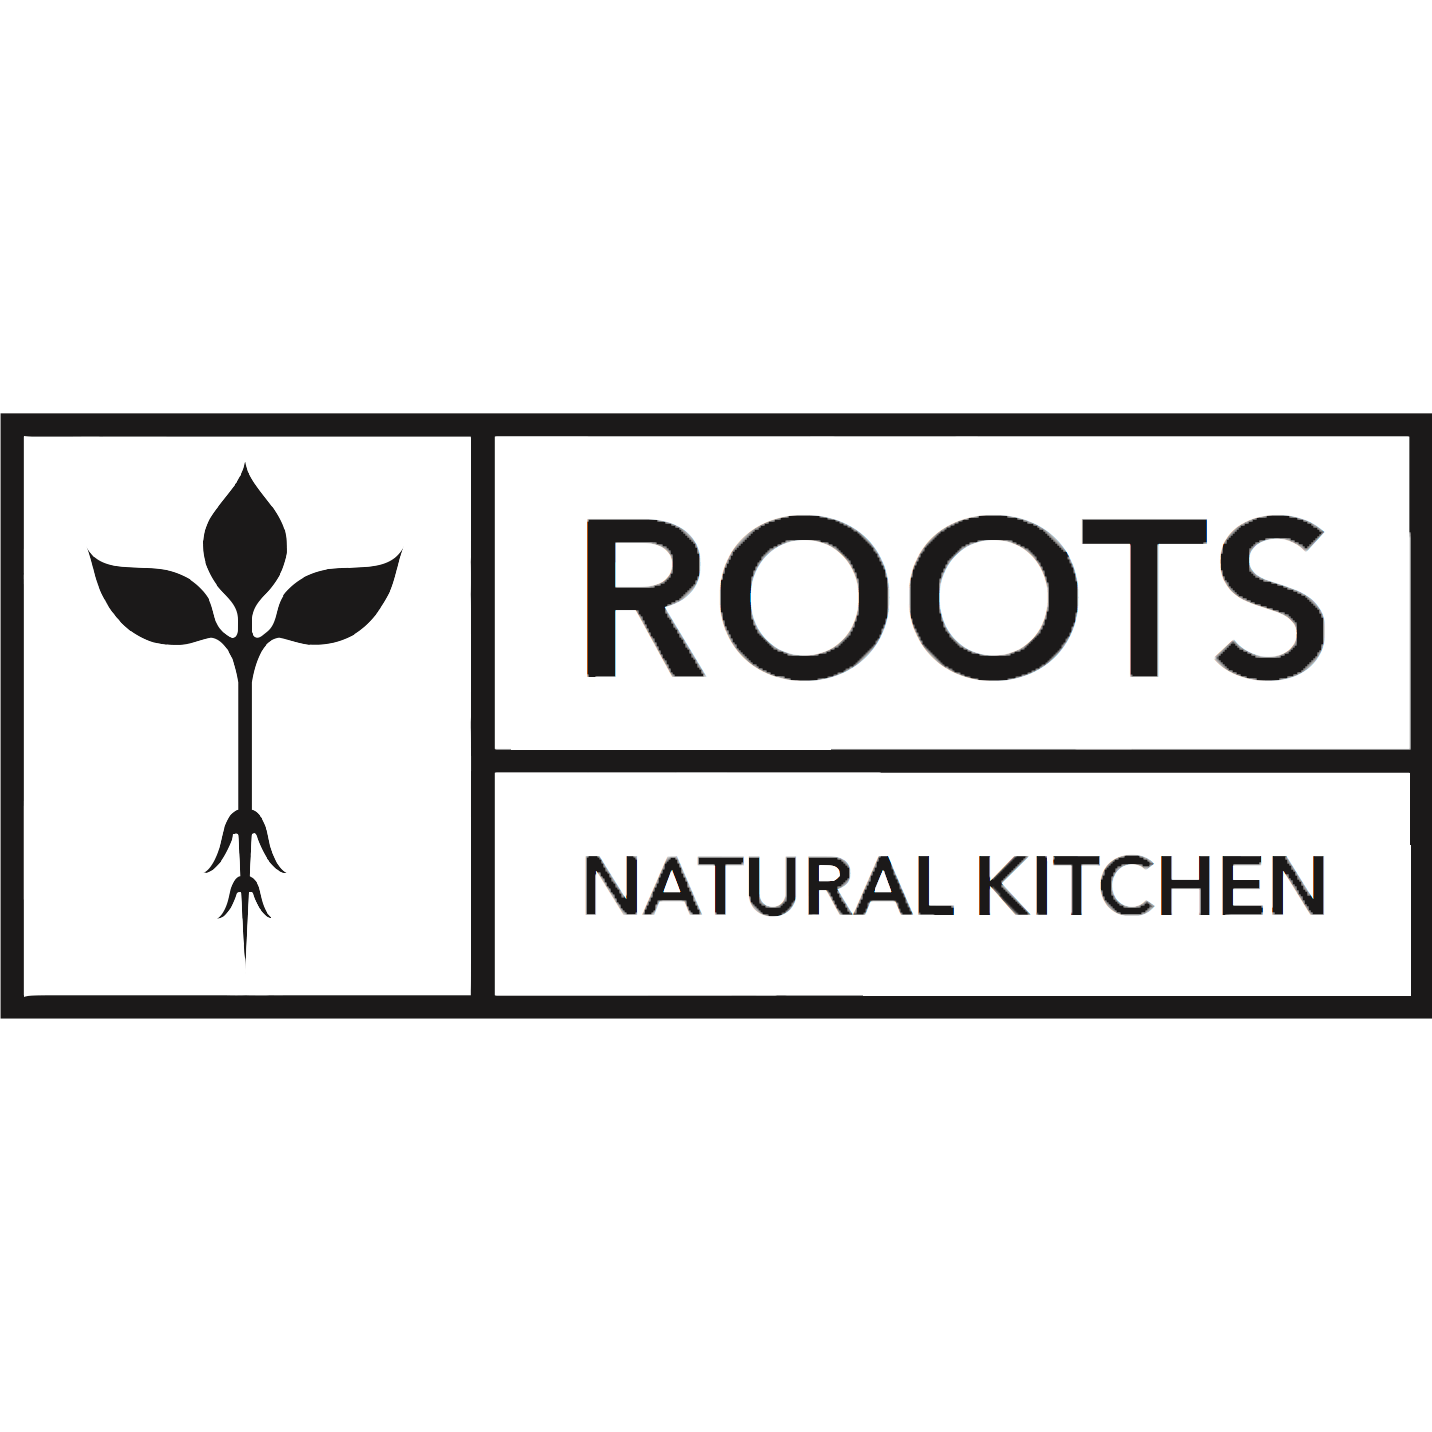 Roots Natural Kitchen - Catering & App Orders - Charlottesville, VA 22903 - (434)480-3133 | ShowMeLocal.com